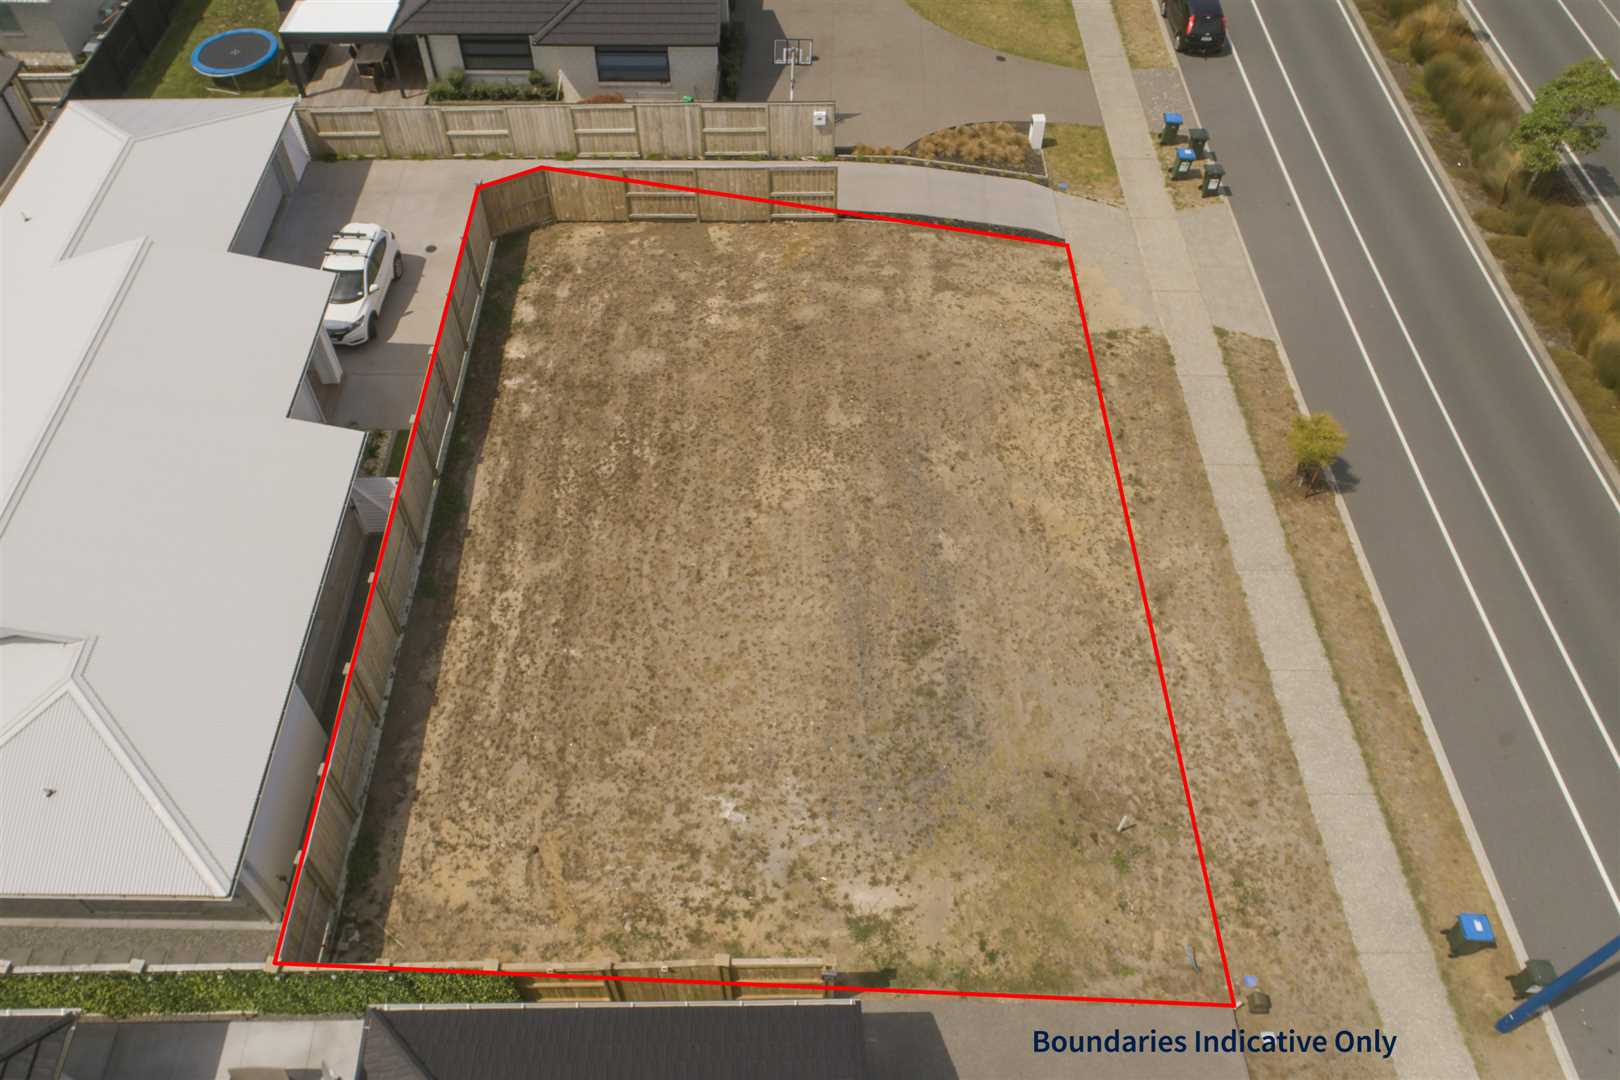 73 The Boulevard, Papamoa